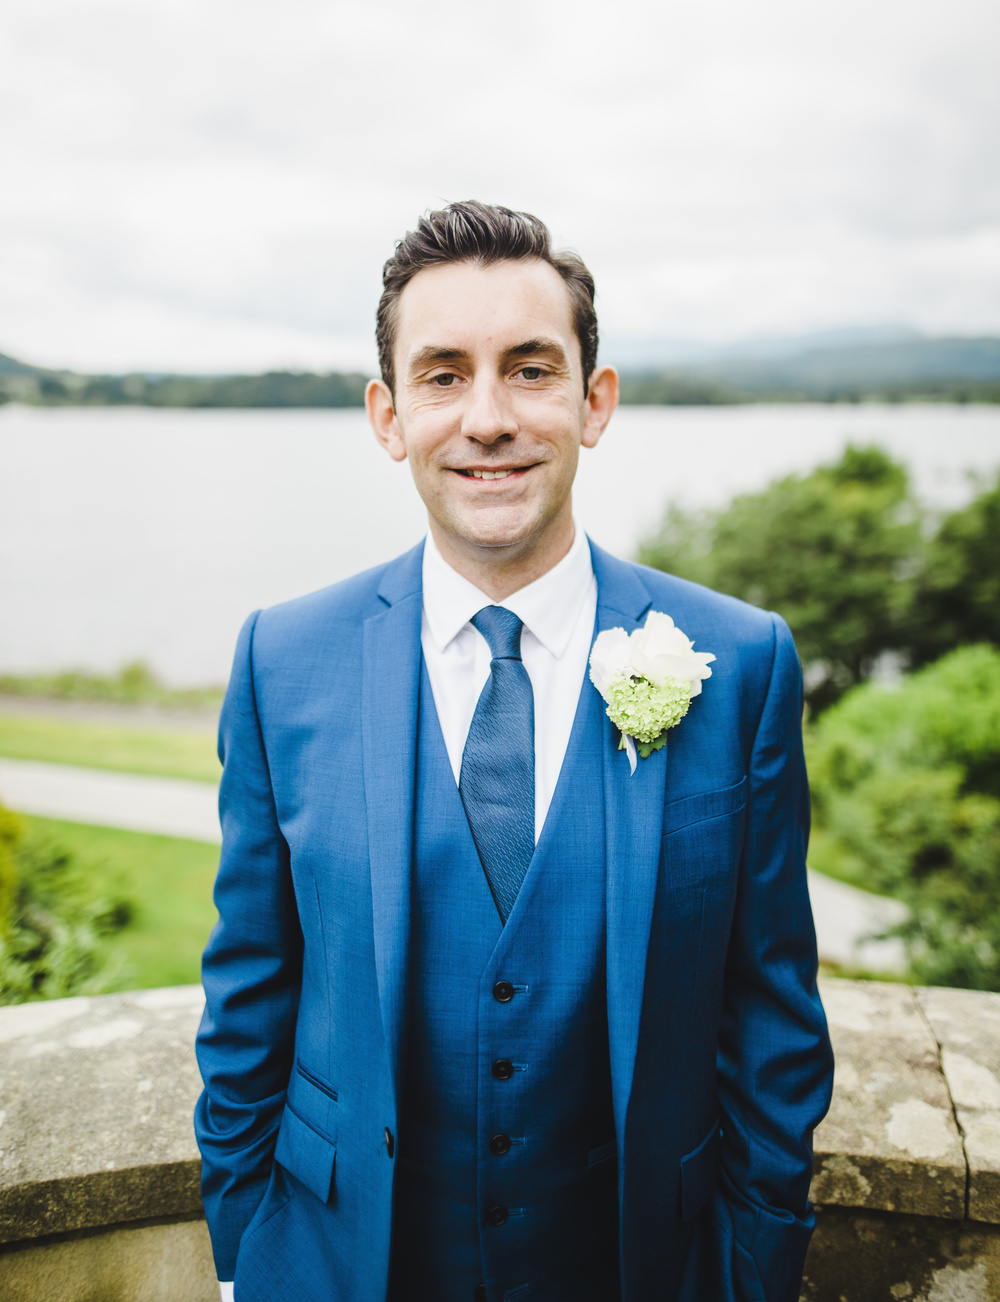 A portrait of the groom- Wedding photographer in the lake district